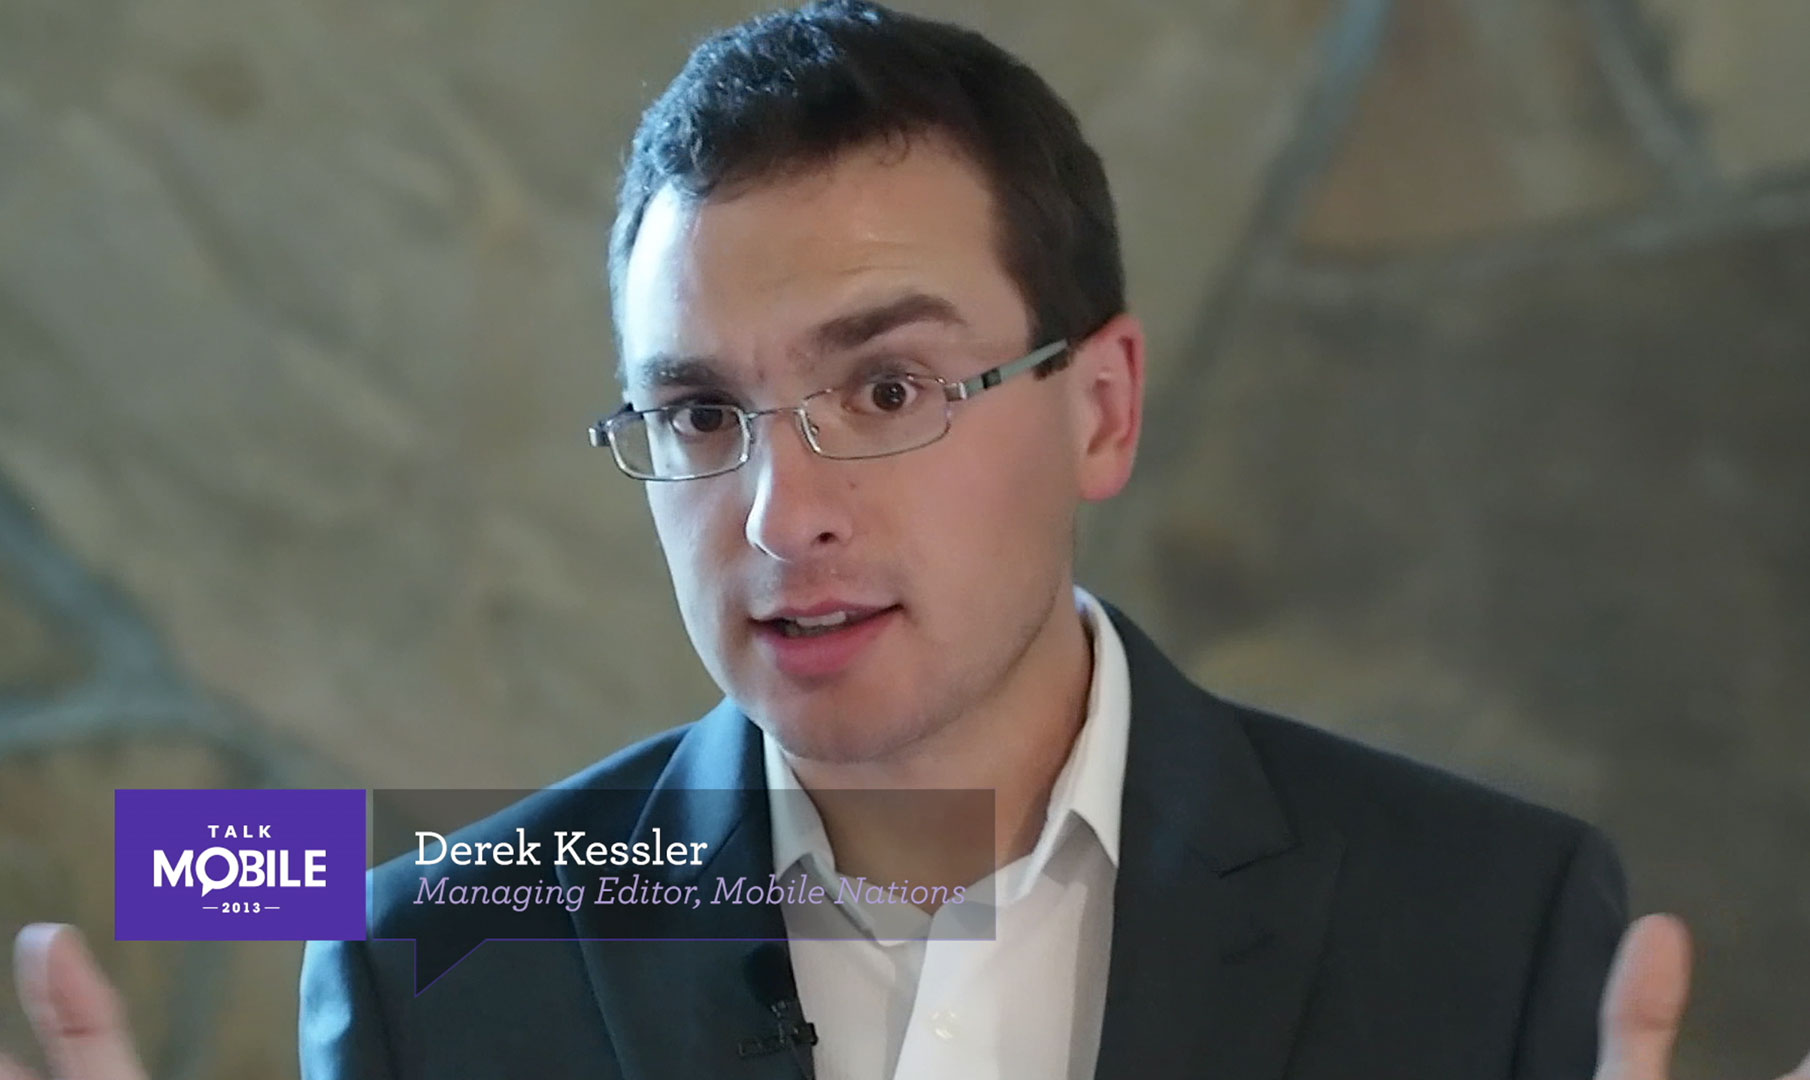 Derek Kessler on the internet being the cloud